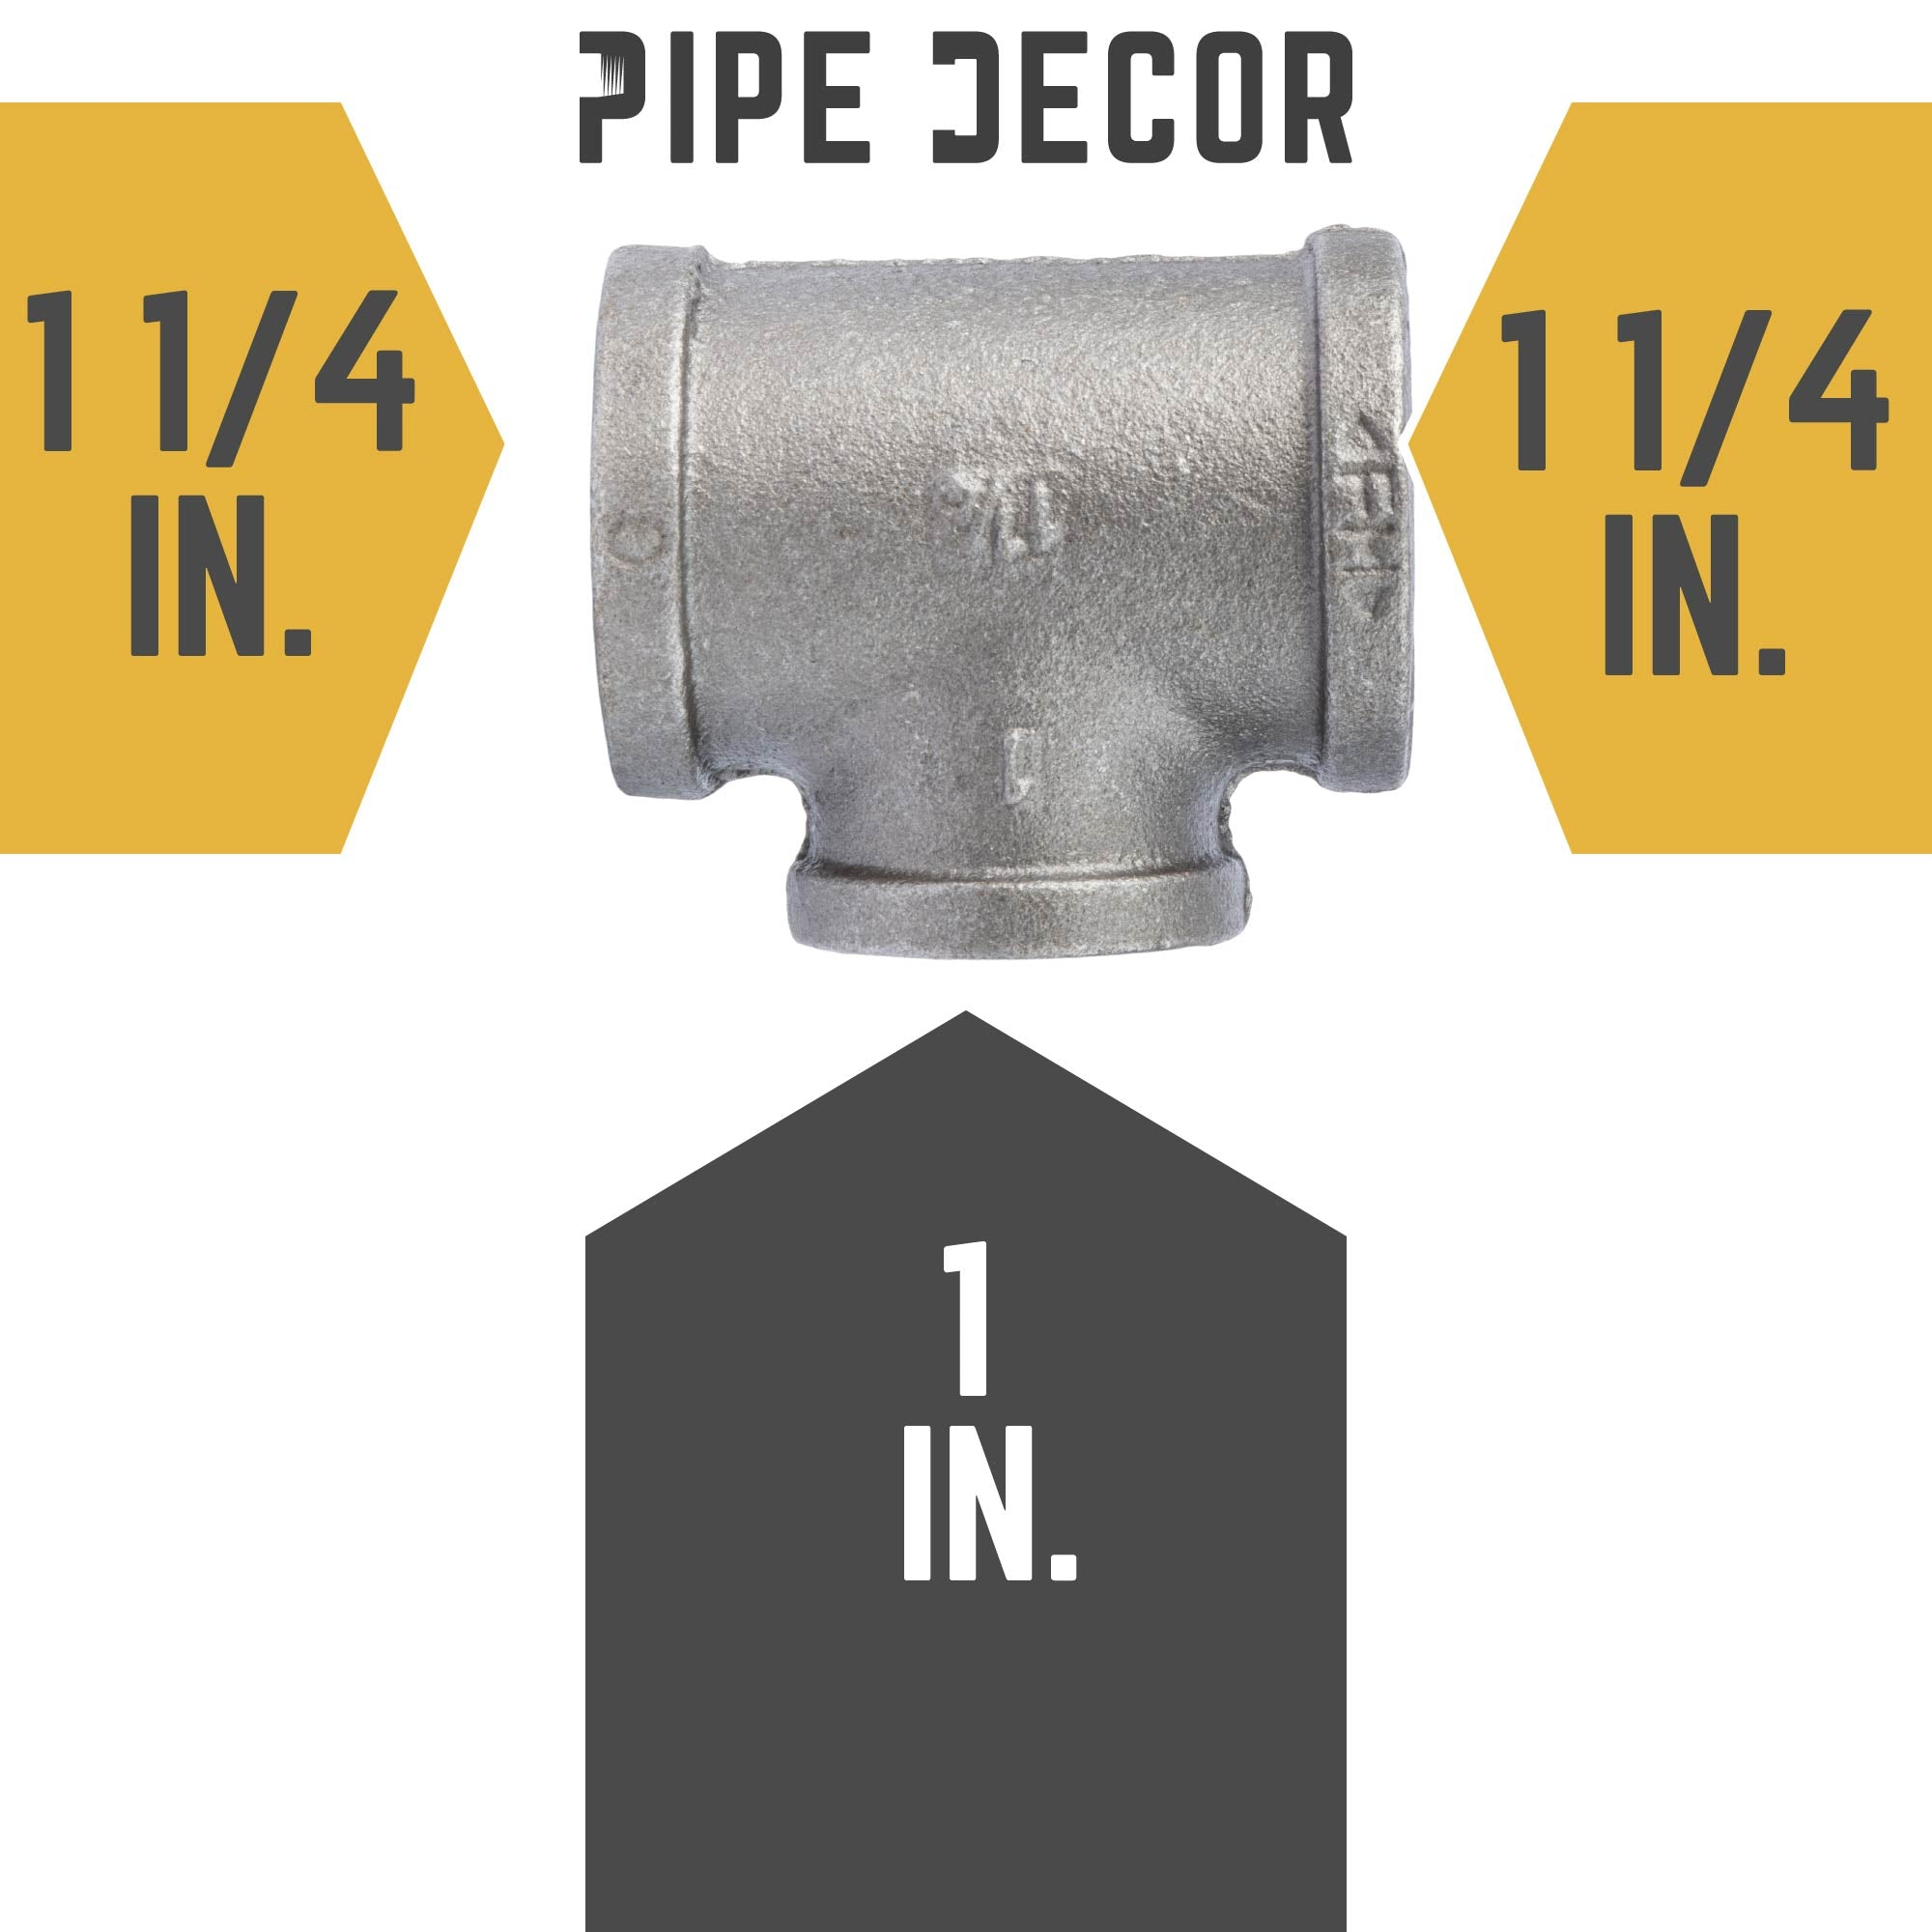 1 1/4 in. X 1 1/4 in. X 1 in. Black Reducing Tee - Pipe Decor